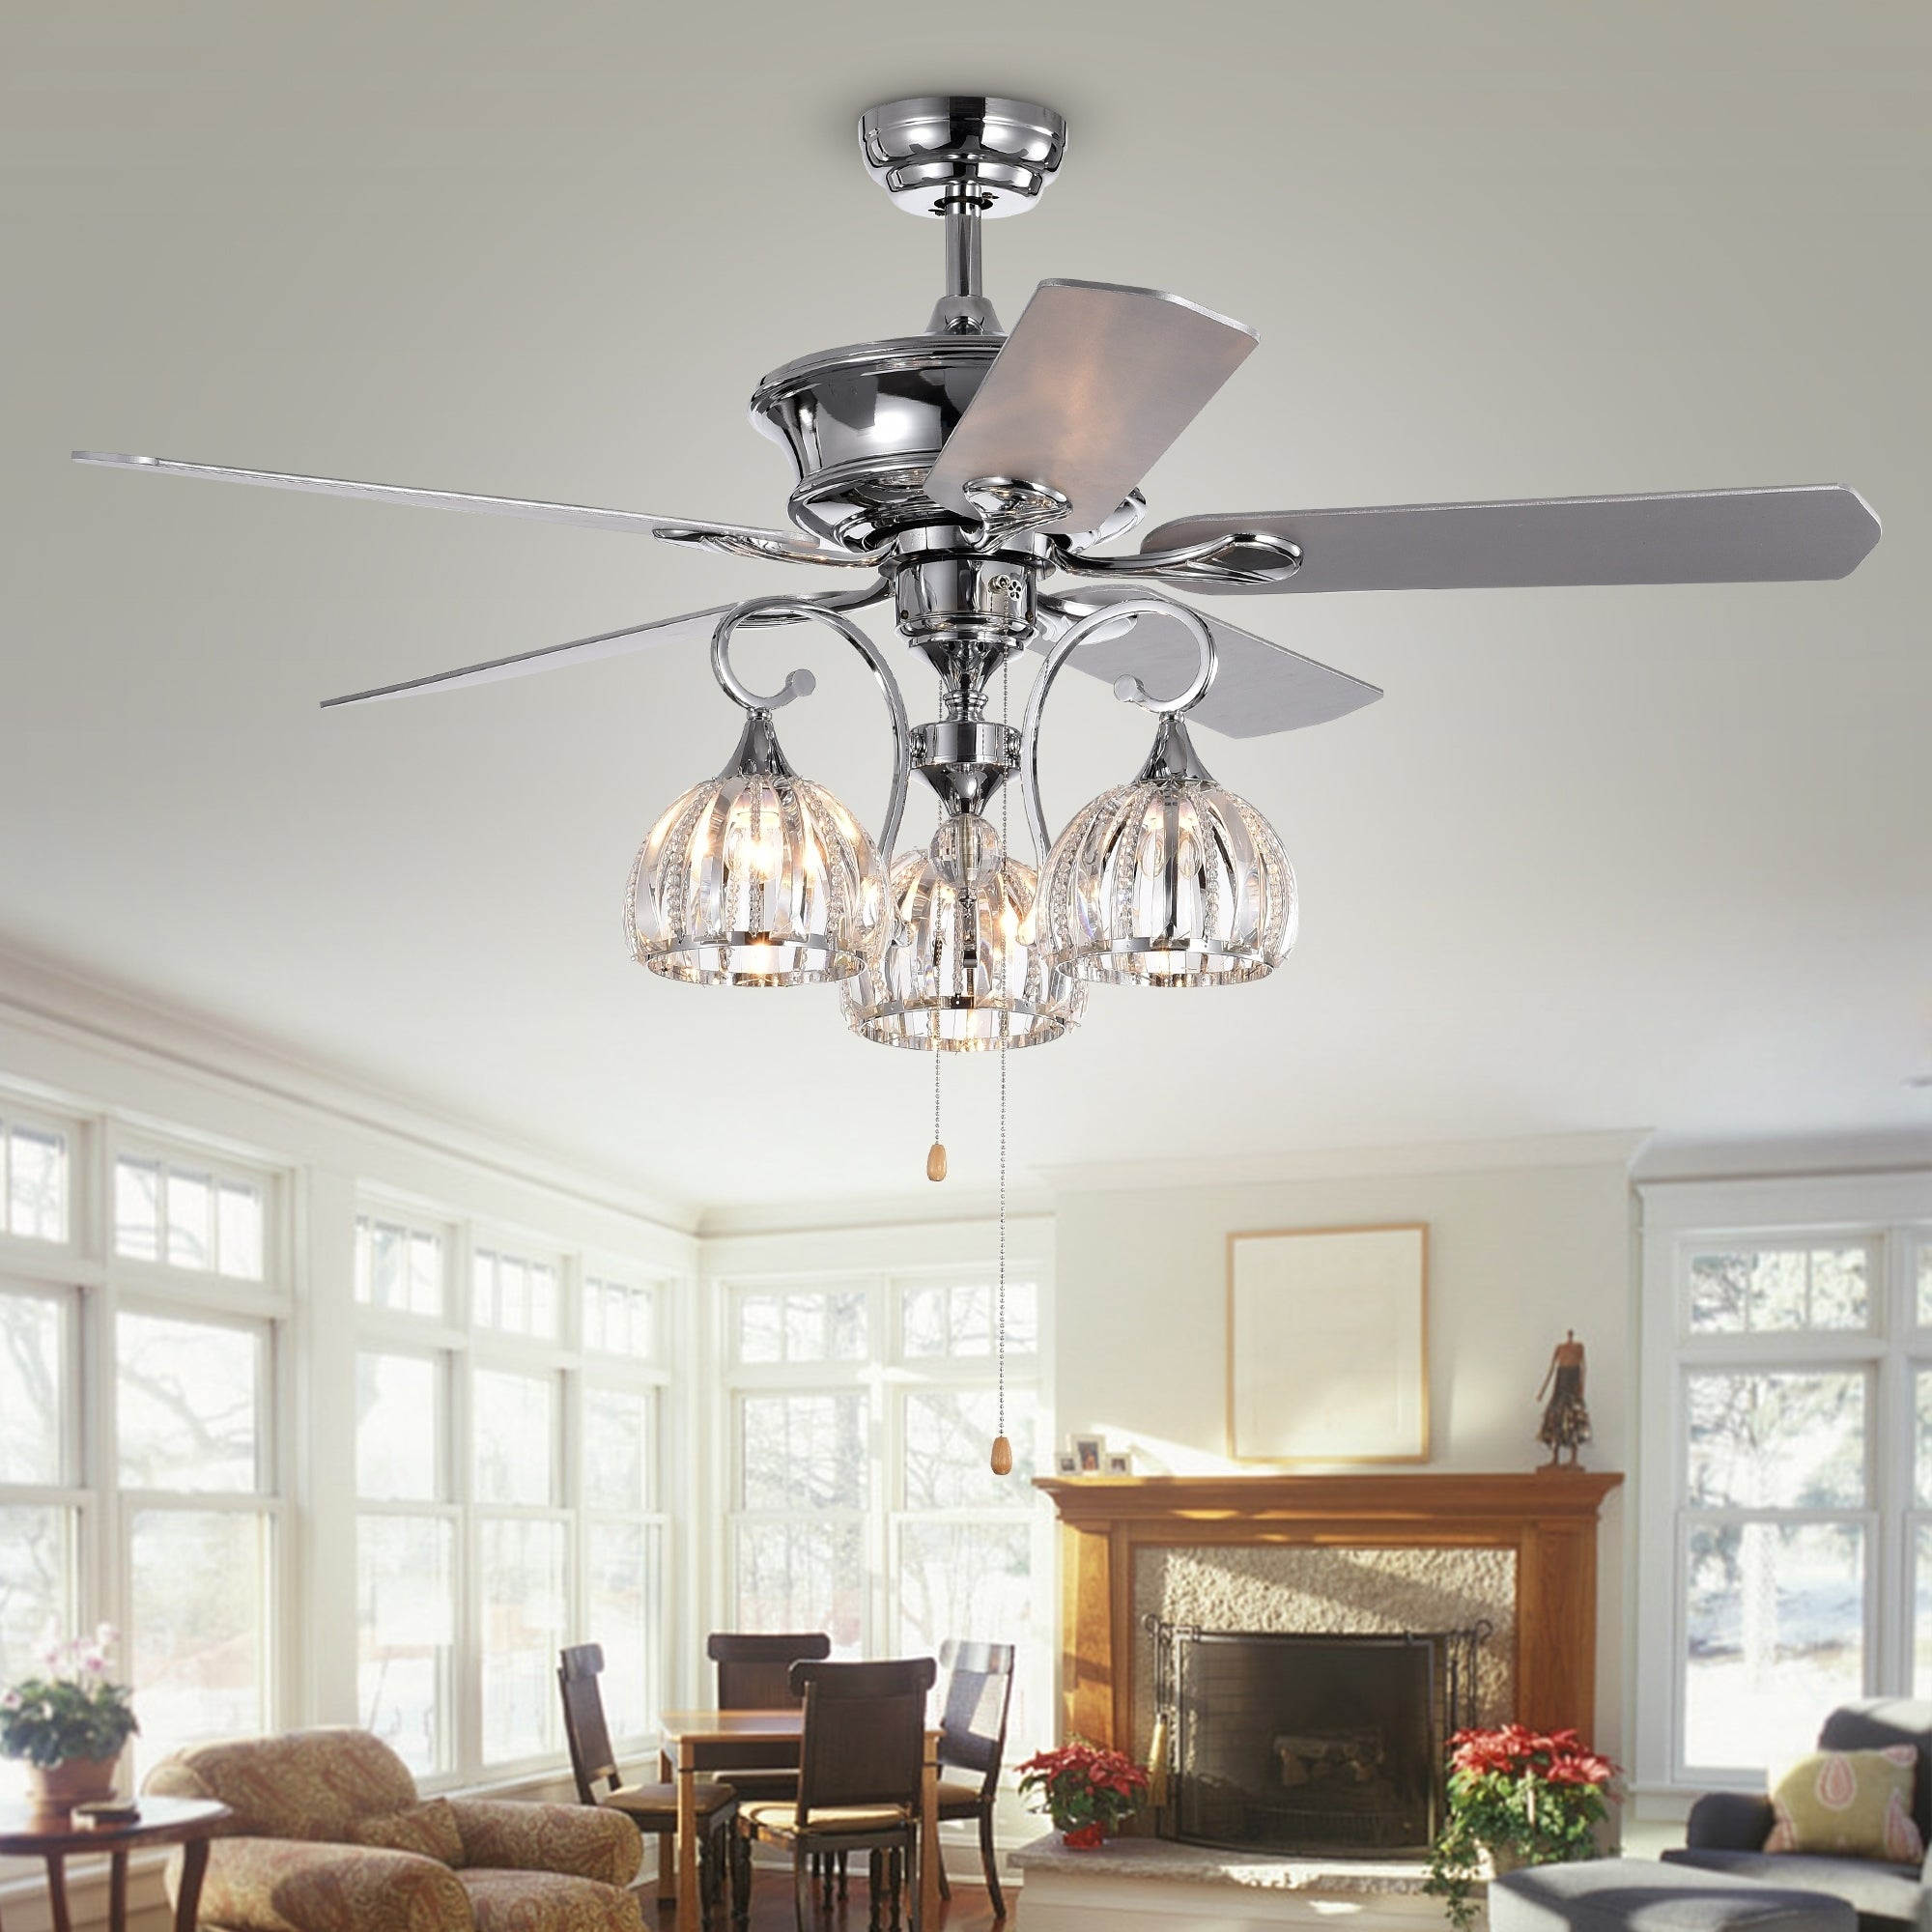 Shop Mavyn 5 Blade 52 Inch Chrome Ceiling Fan With 3 Light Crystal  Chandelier (Optional Remote)   On Sale   Free Shipping Today    Overstock.com   22108334